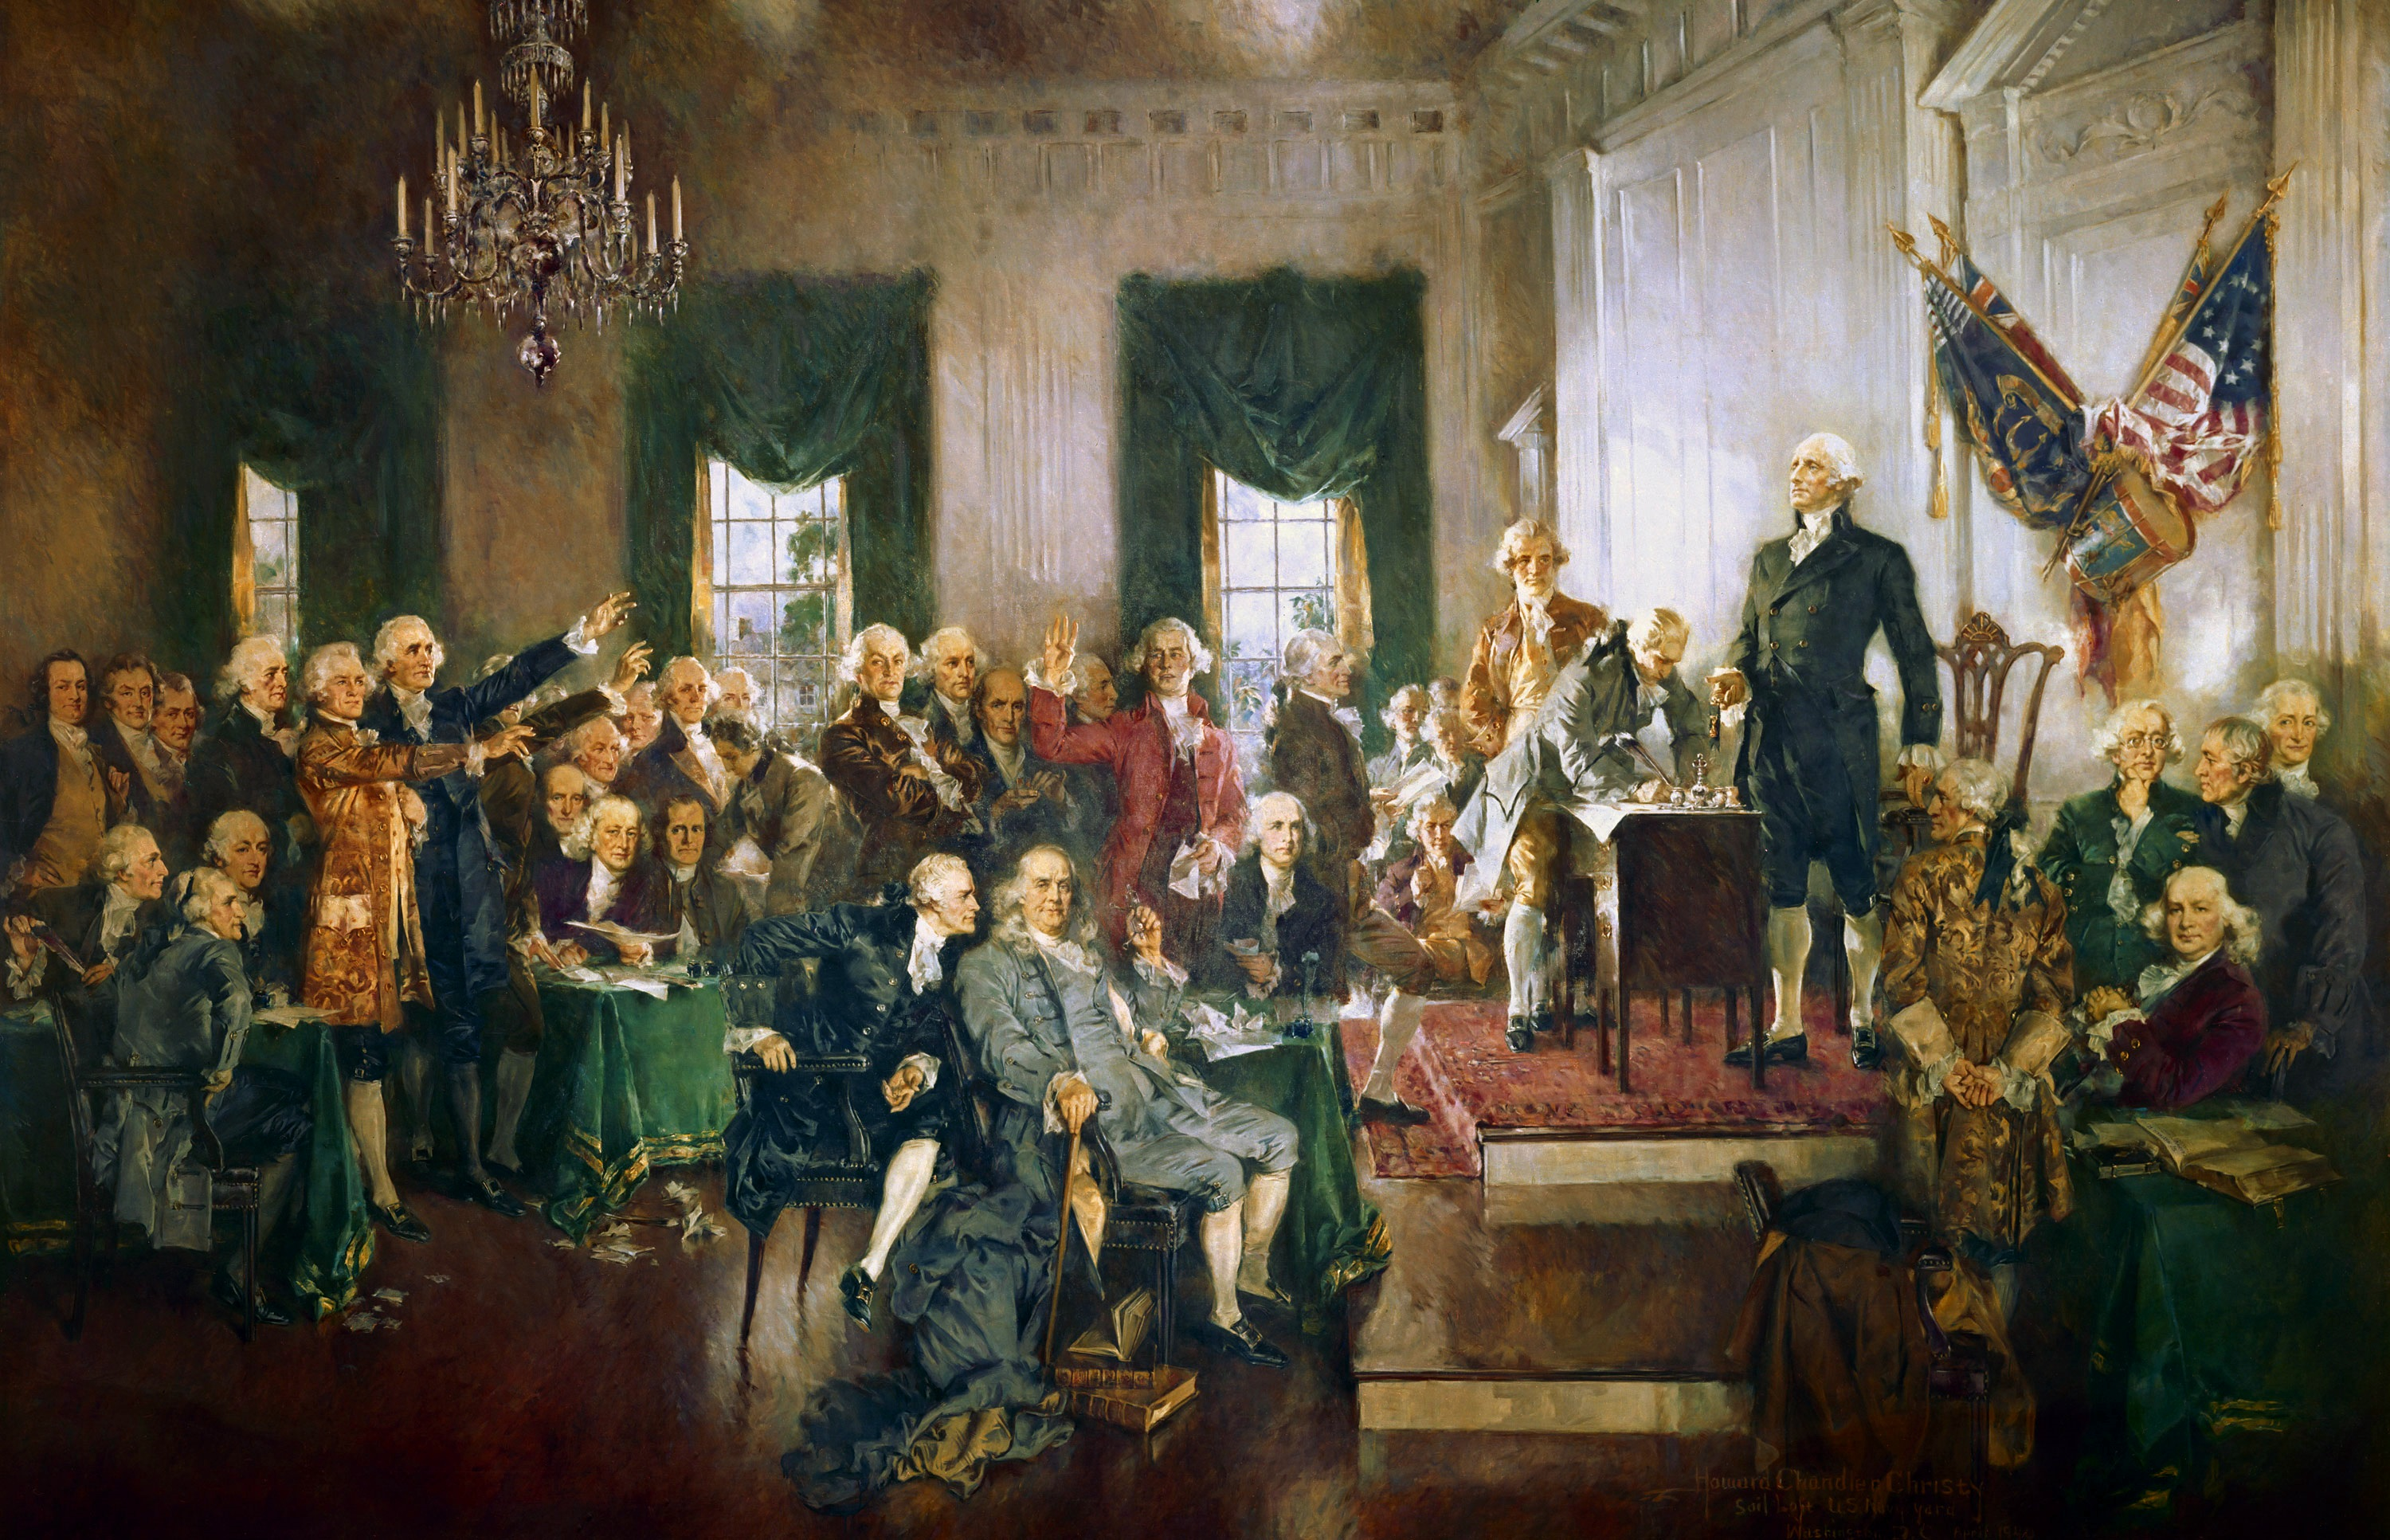 Painting of the signing of the American Constitution.